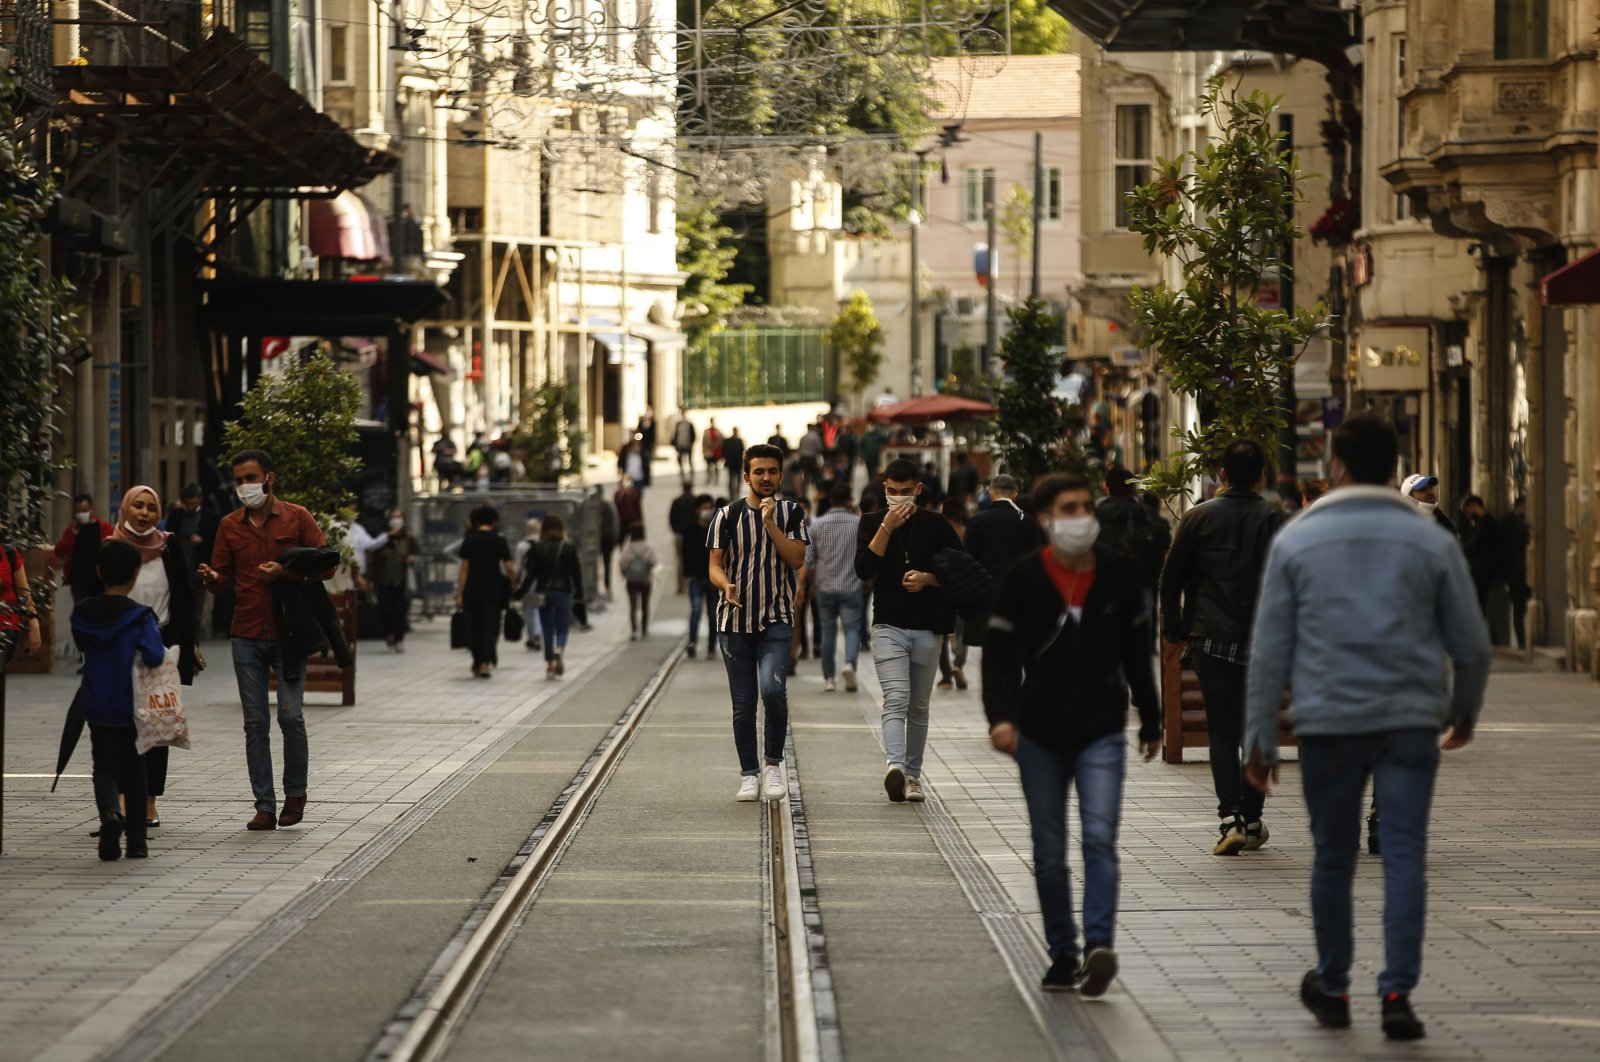 People, most wearing protective face masks against the spread of coronavirus, walk on Istiklal street, in one of Istanbul's main shopping districts, June 1, 2020. (AP Photo)